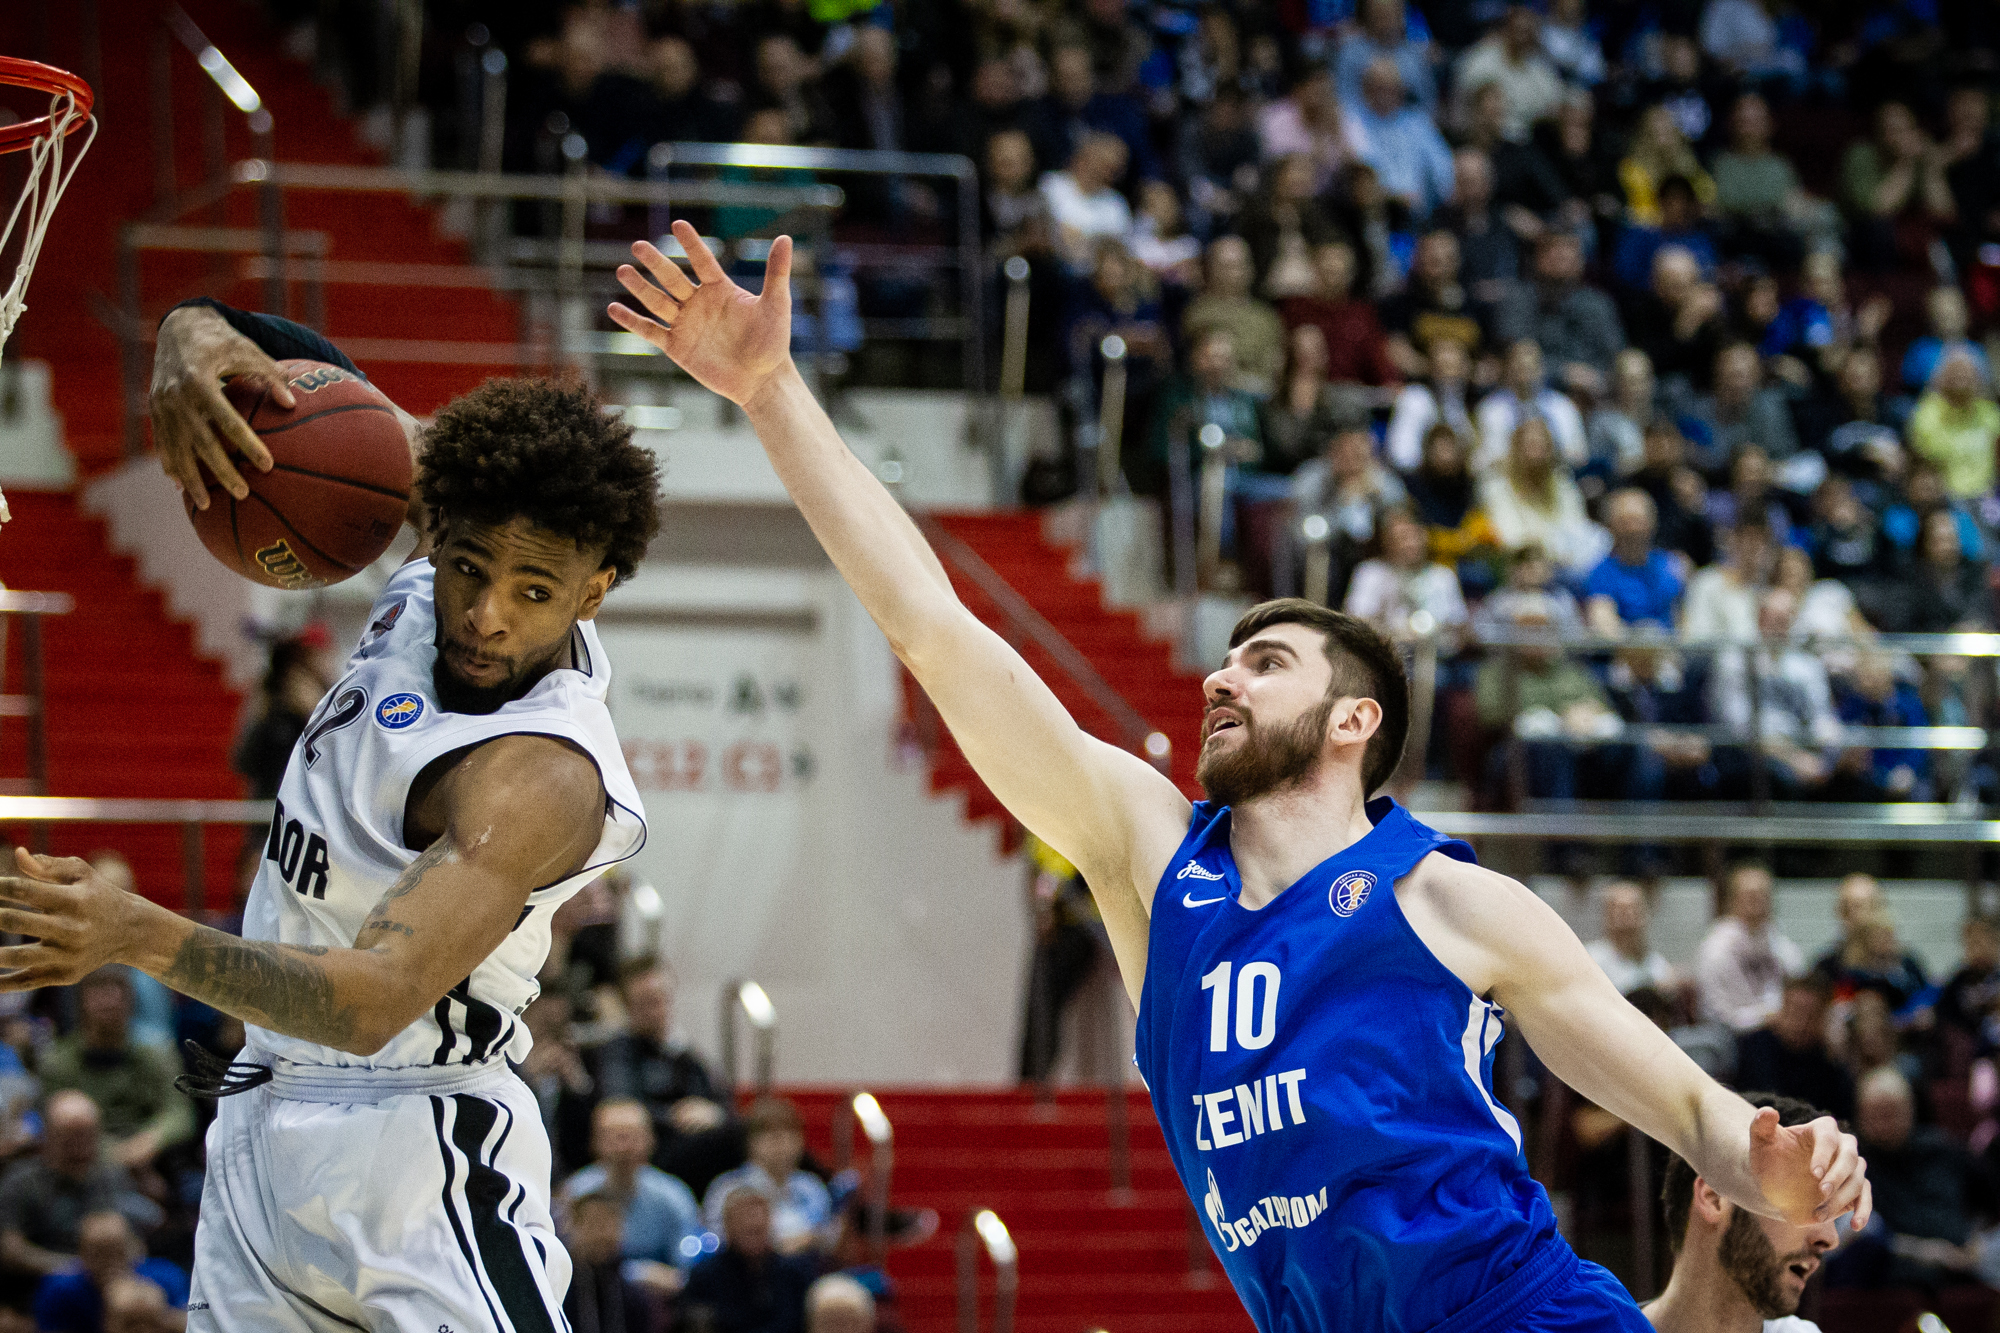 Week 20 In Review: Kalev Passes Avtodor In Playoff Race, Antonov Joins Club 2000